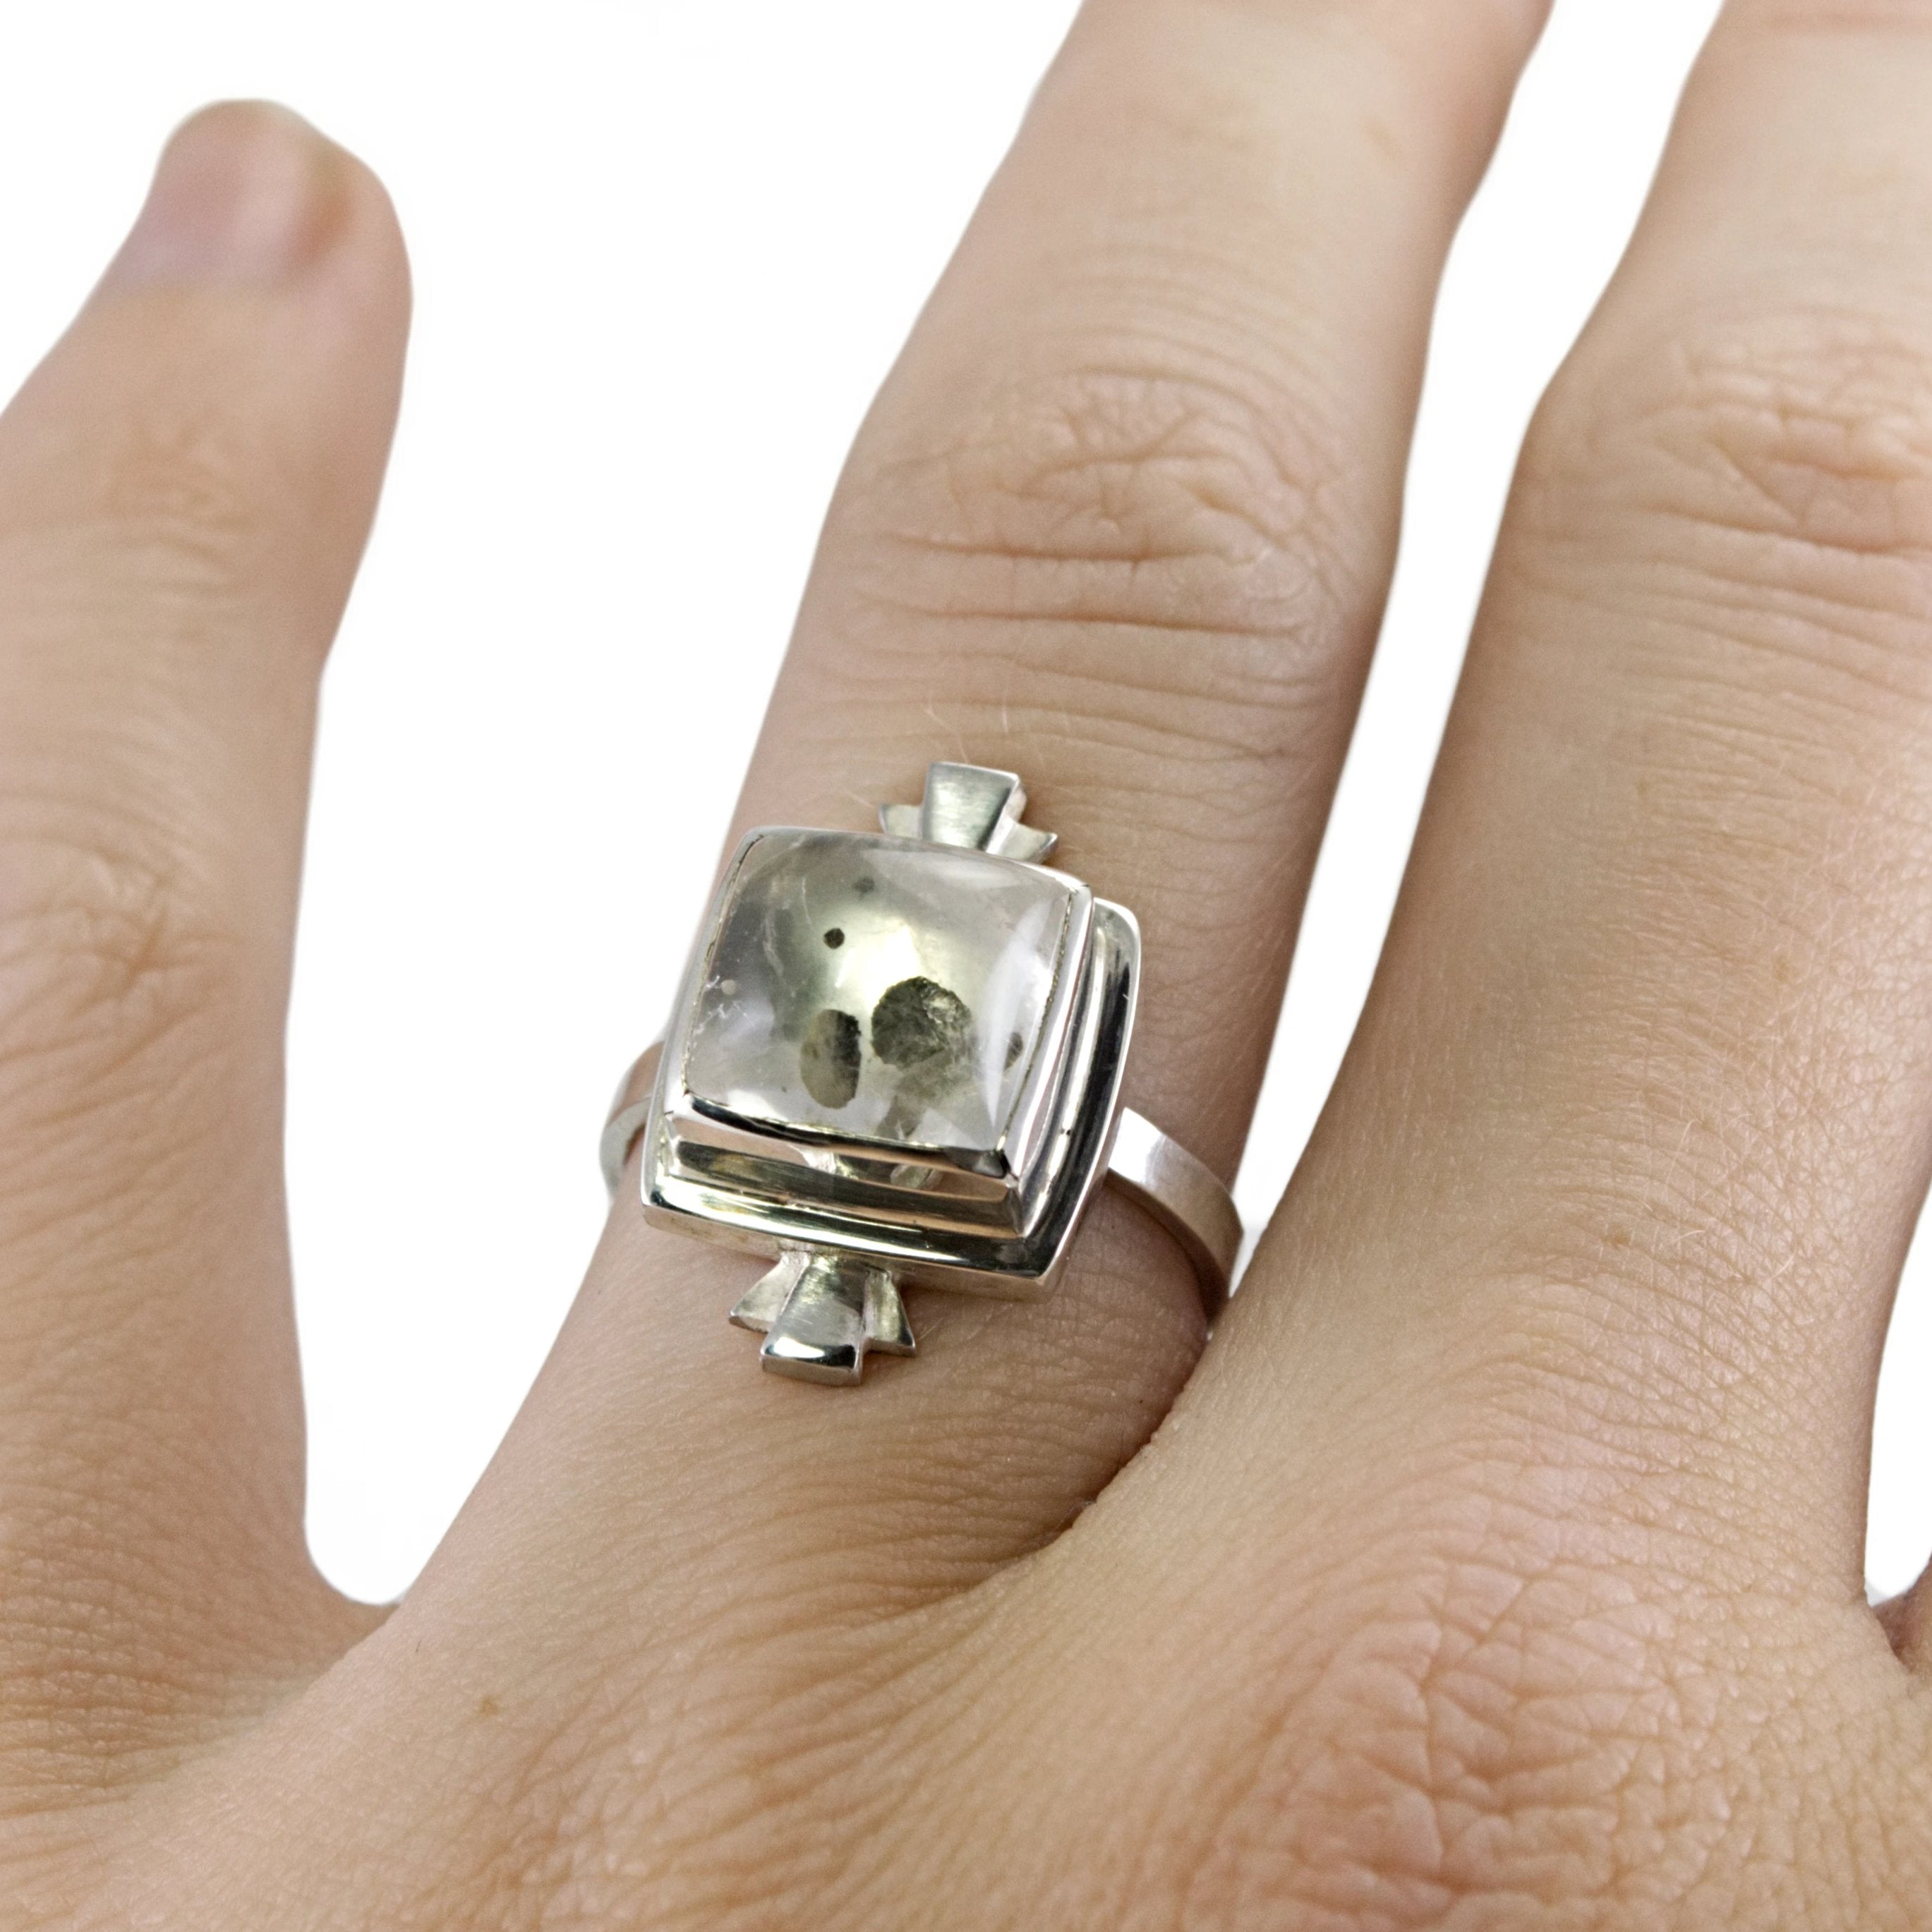 pyrite in quartz ring